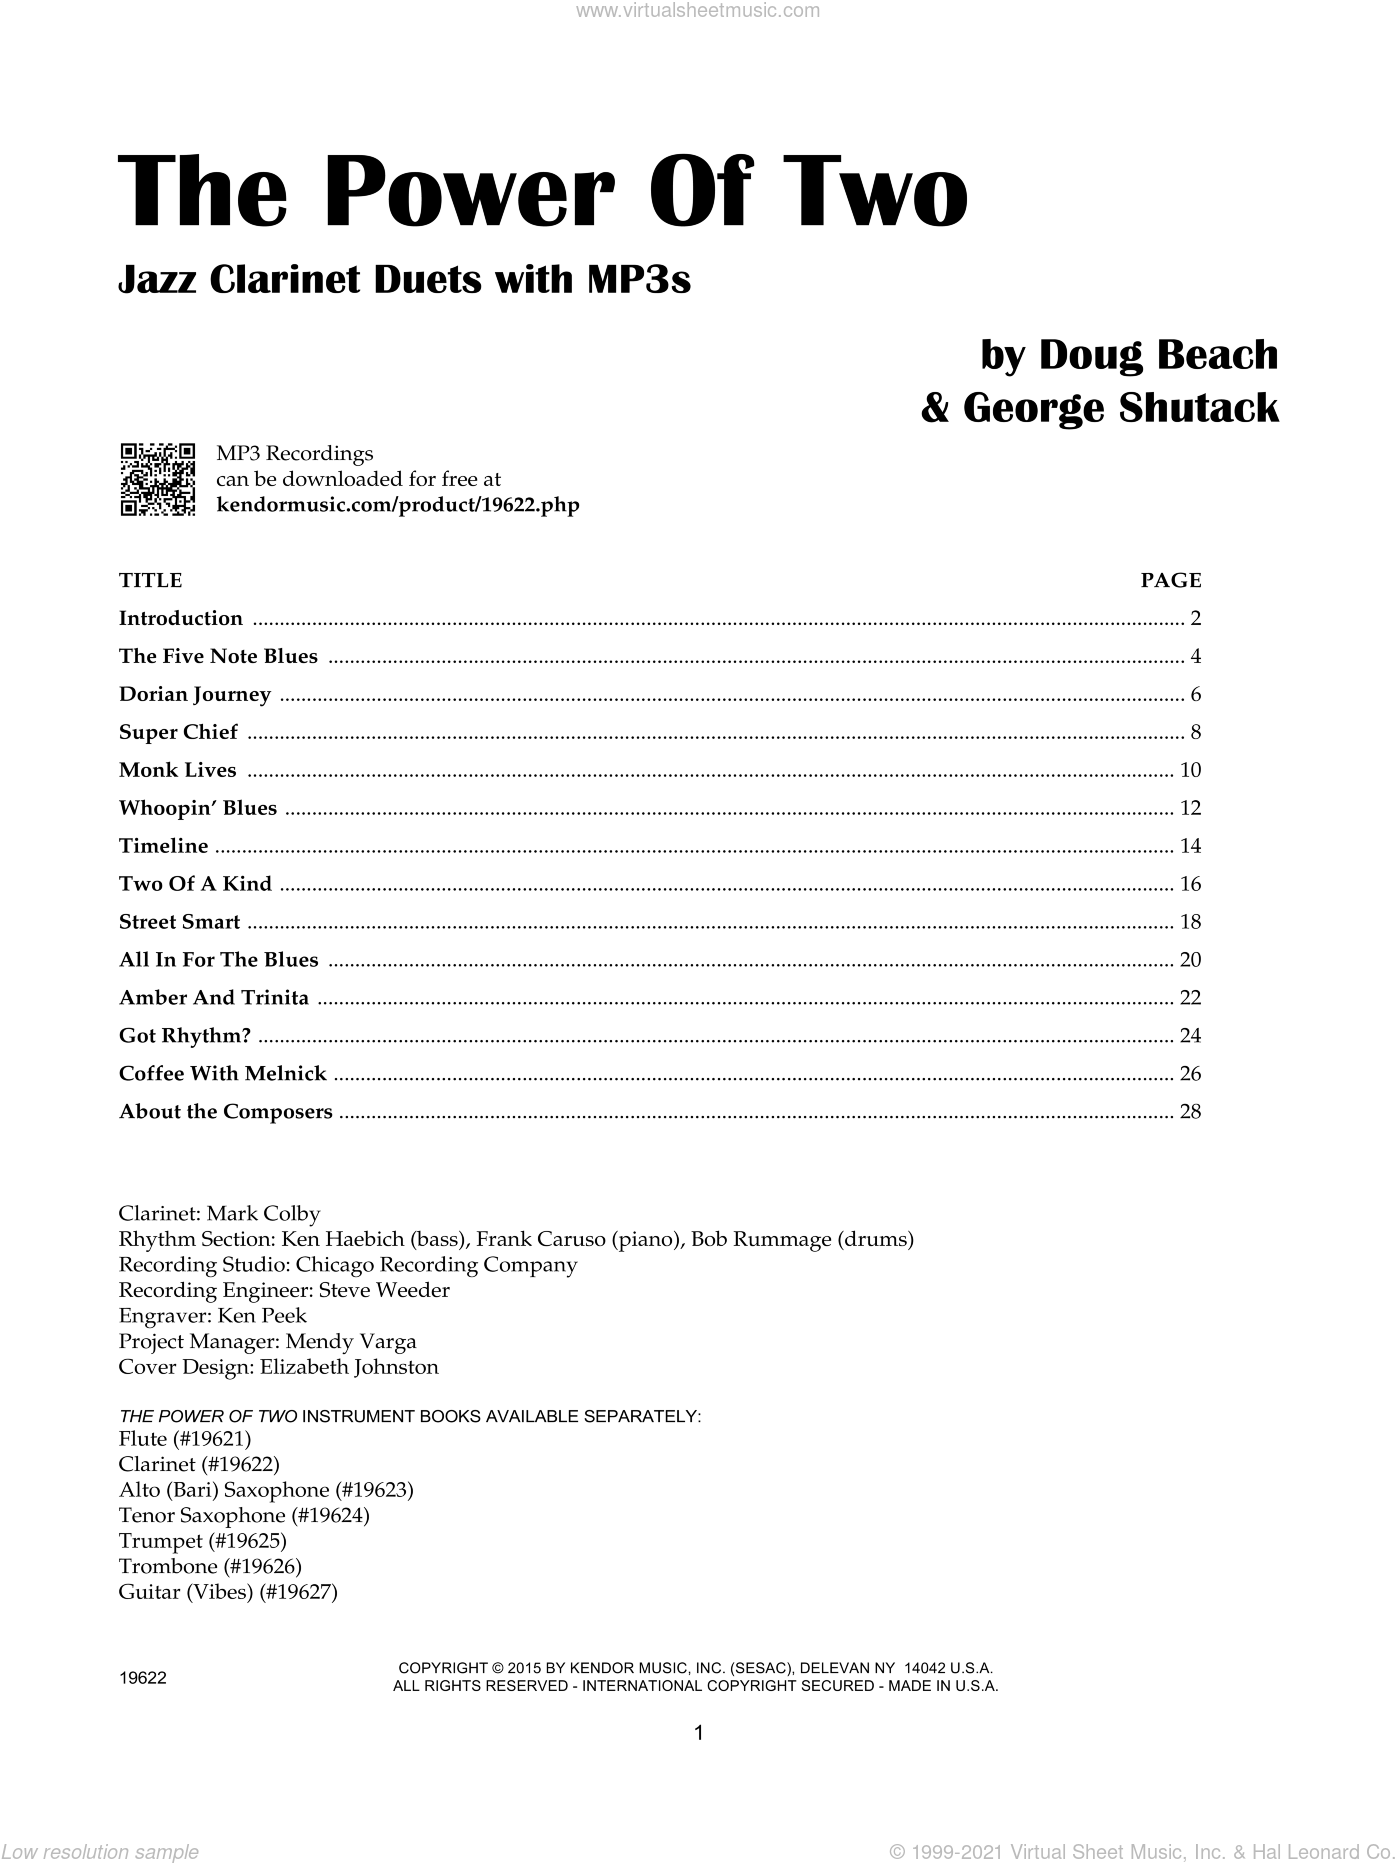 The Power Of Two - Clarinet sheet music for two clarinets by Doug Beach and George Shutack. Score Image Preview.